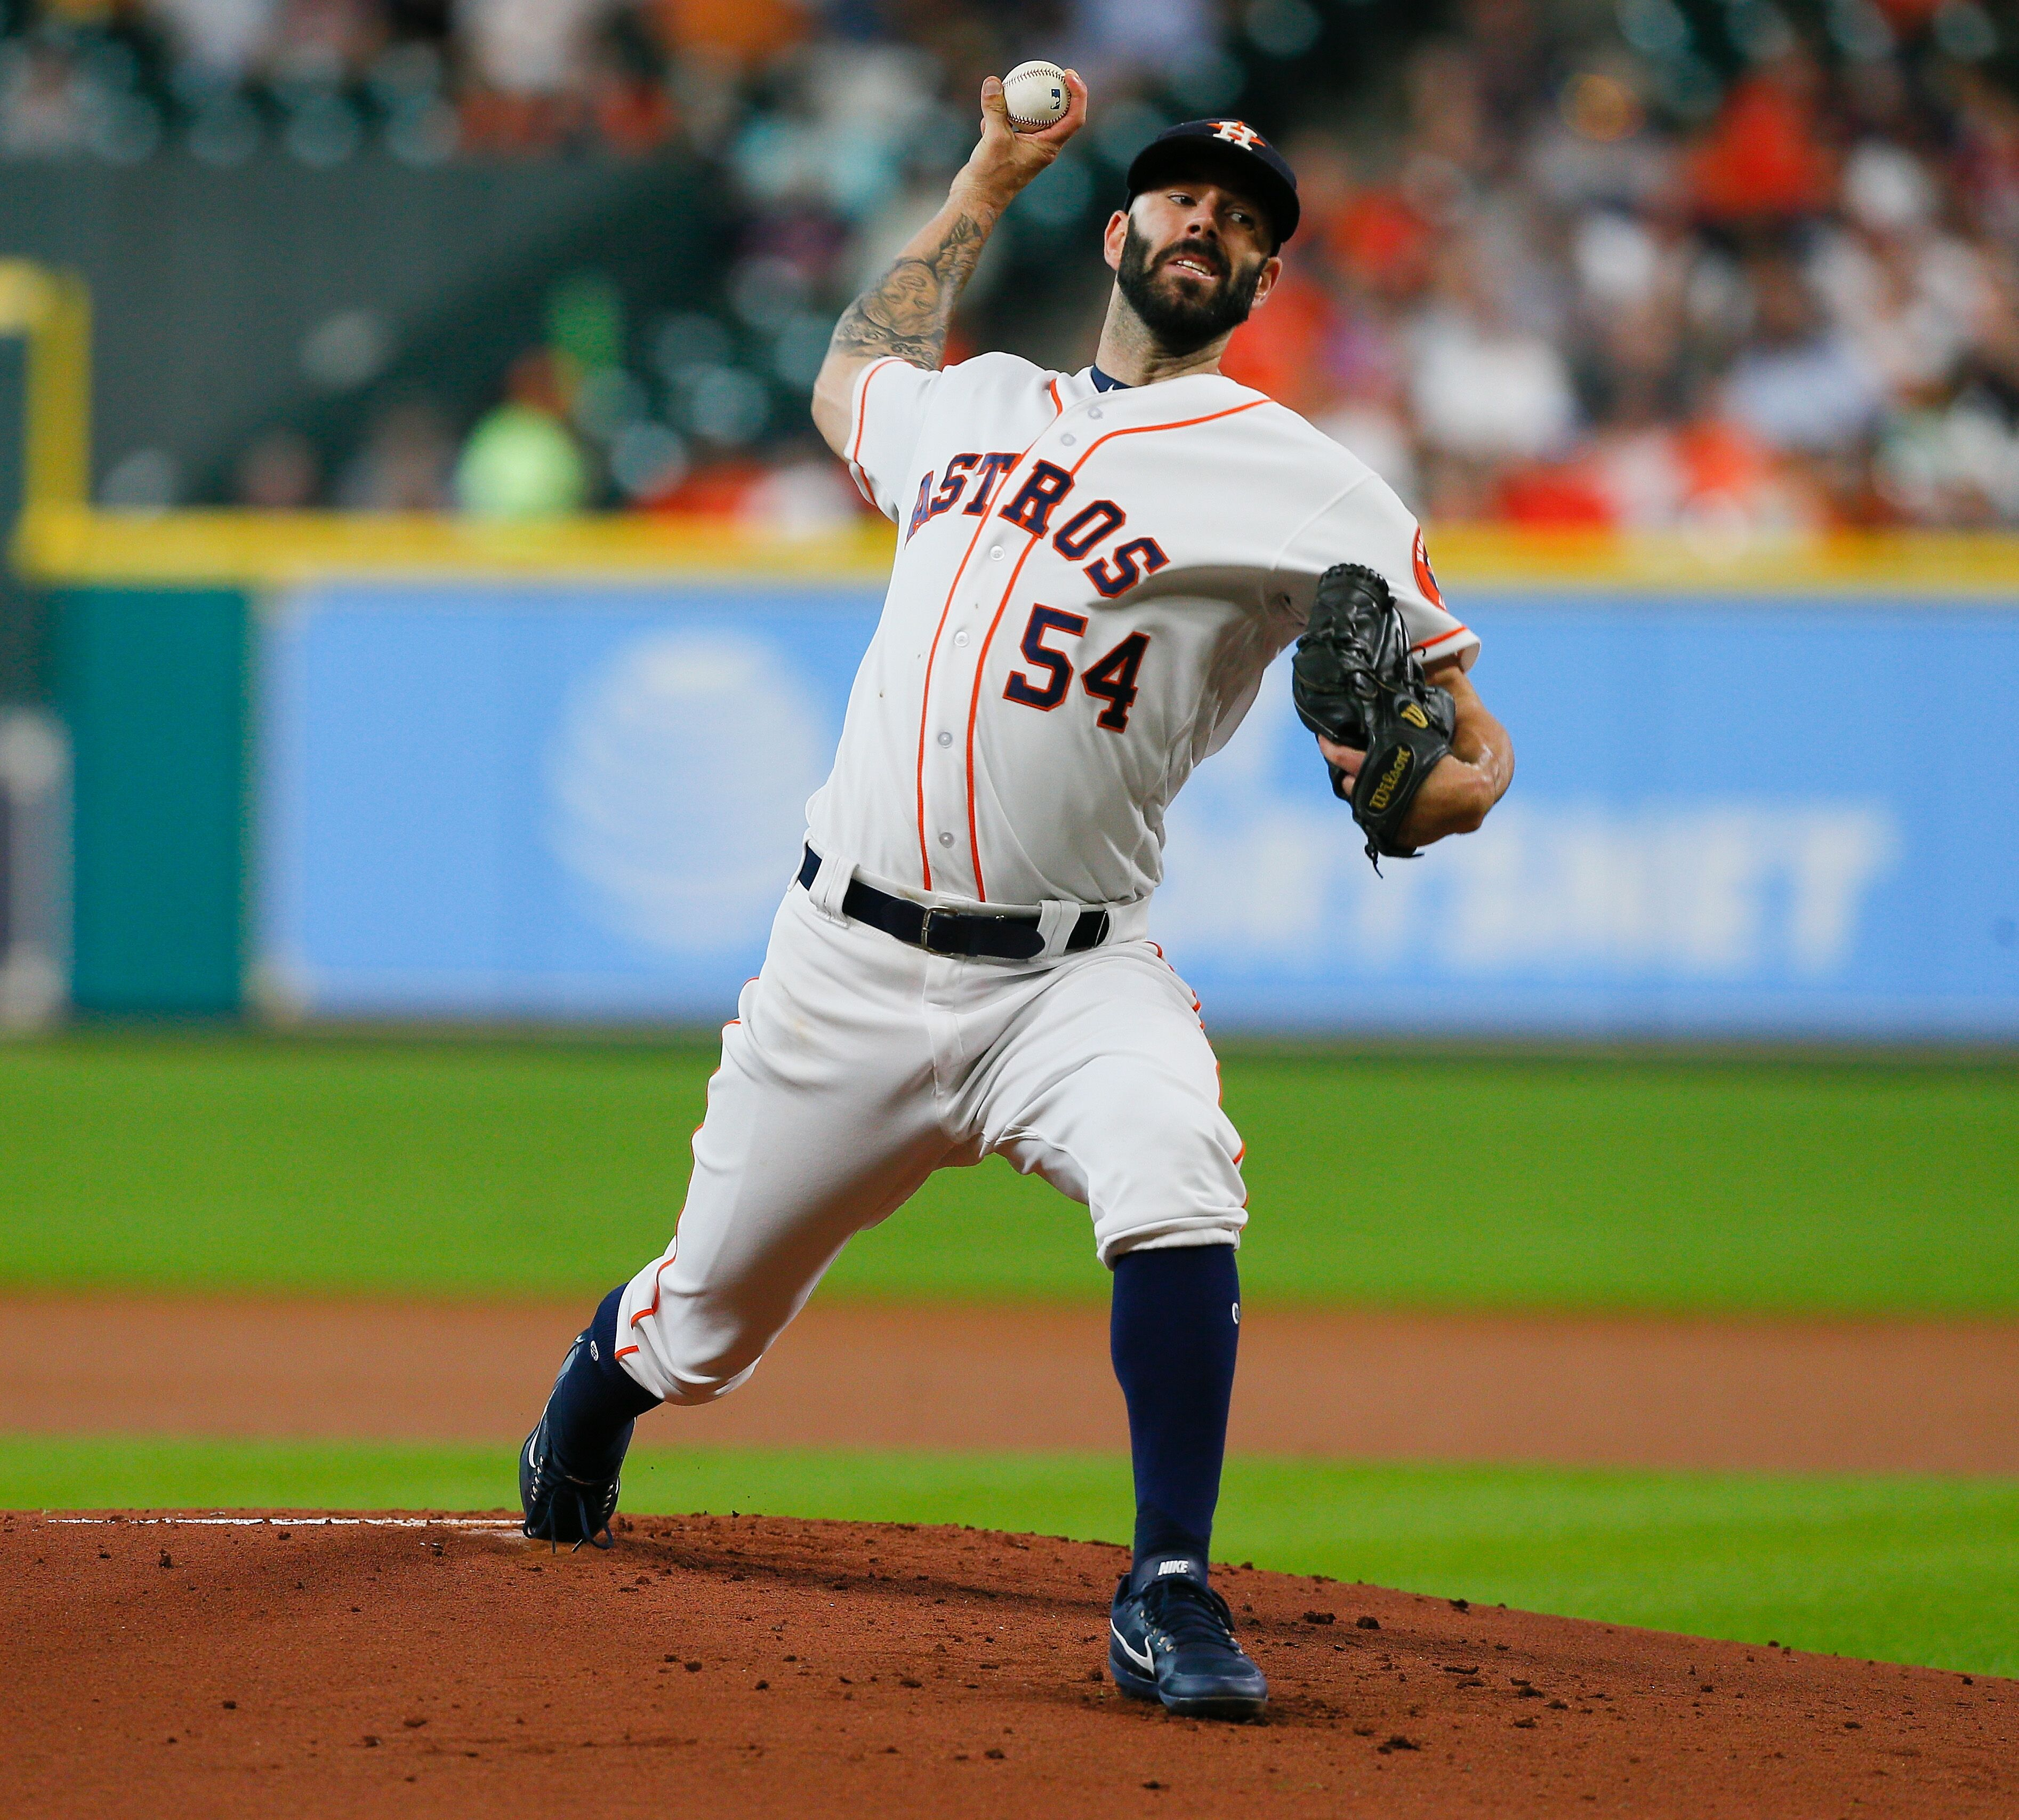 Houston Rockets House Jr: Houston Astros: Mike Fiers, Roster Expansion Helps Ease